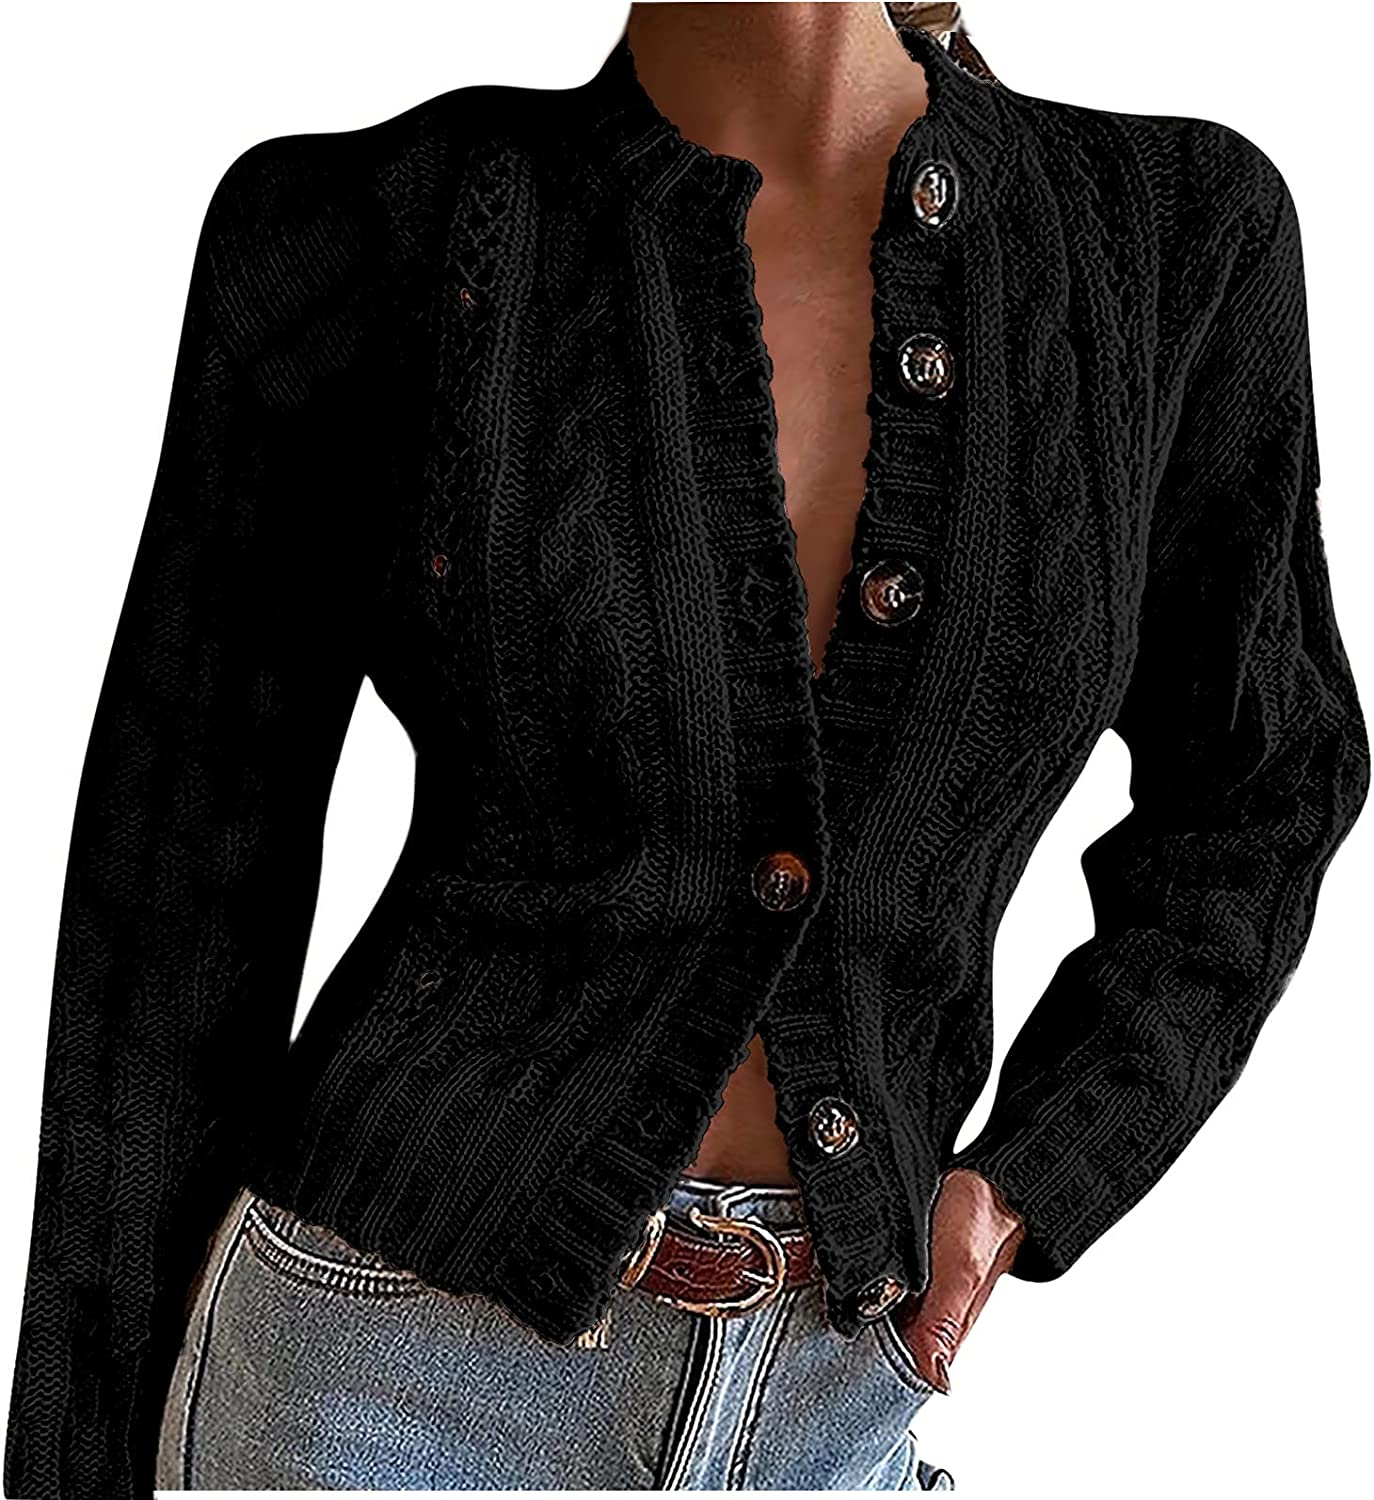 Women?s Long Sleeve Cardigan Open Front Solid Buttons Cable Knit Pocket Cardigan Sweater